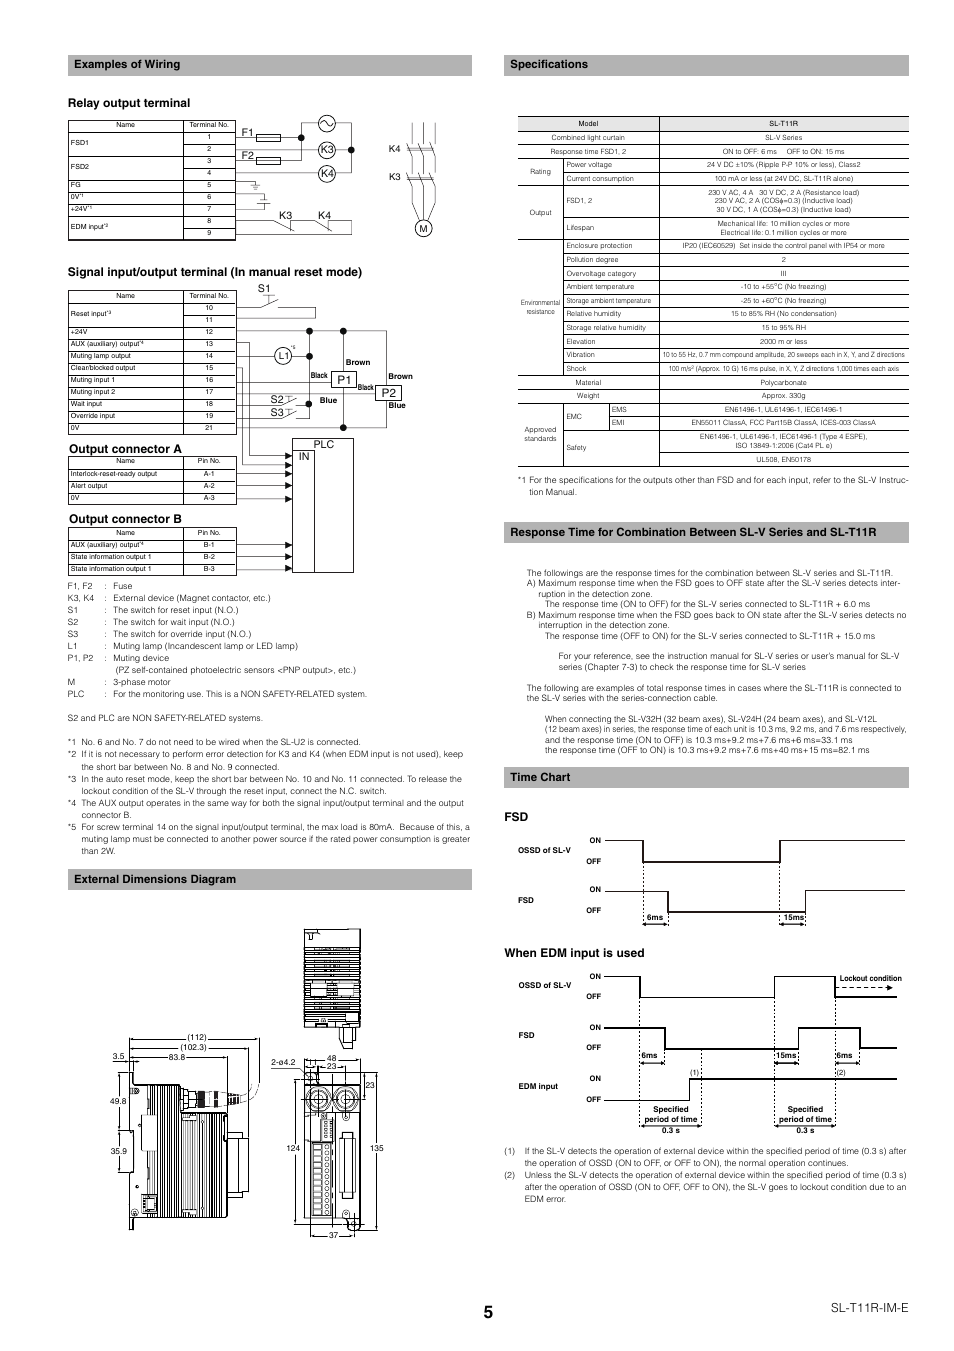 Keyence Wiring Diagram Schematic 2019 Plc Examples Of External Dimensions Specifications Rh Manualsdir Com Il 1000 Iv G10